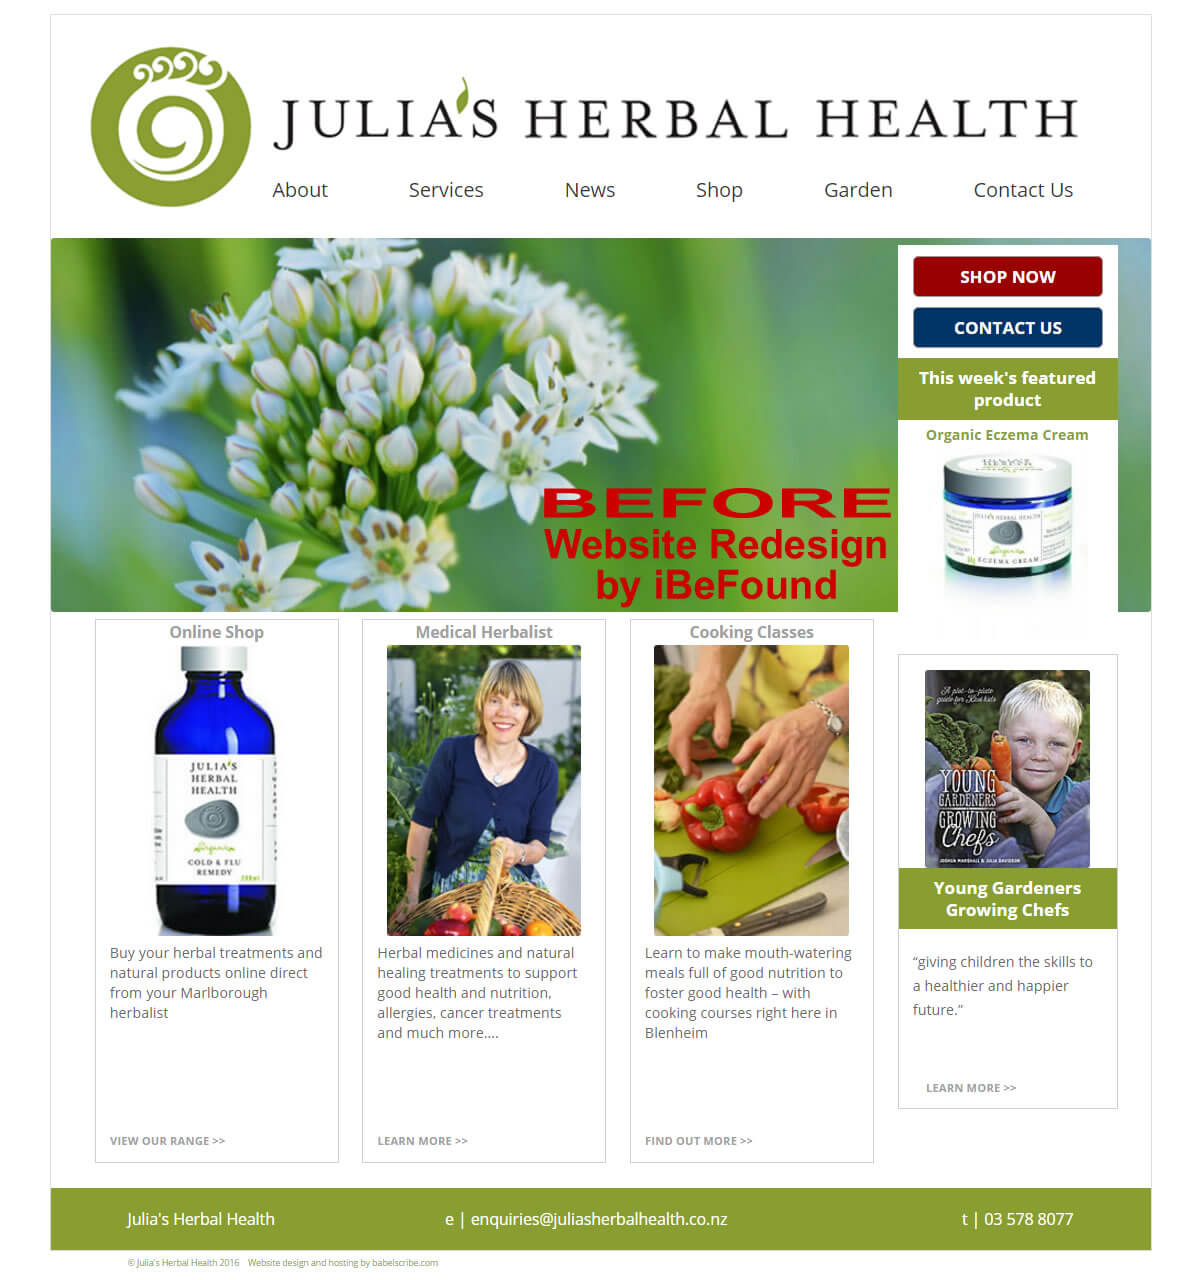 Homepage Of Julias Herbal Health Before Website Redesign By Ibefound